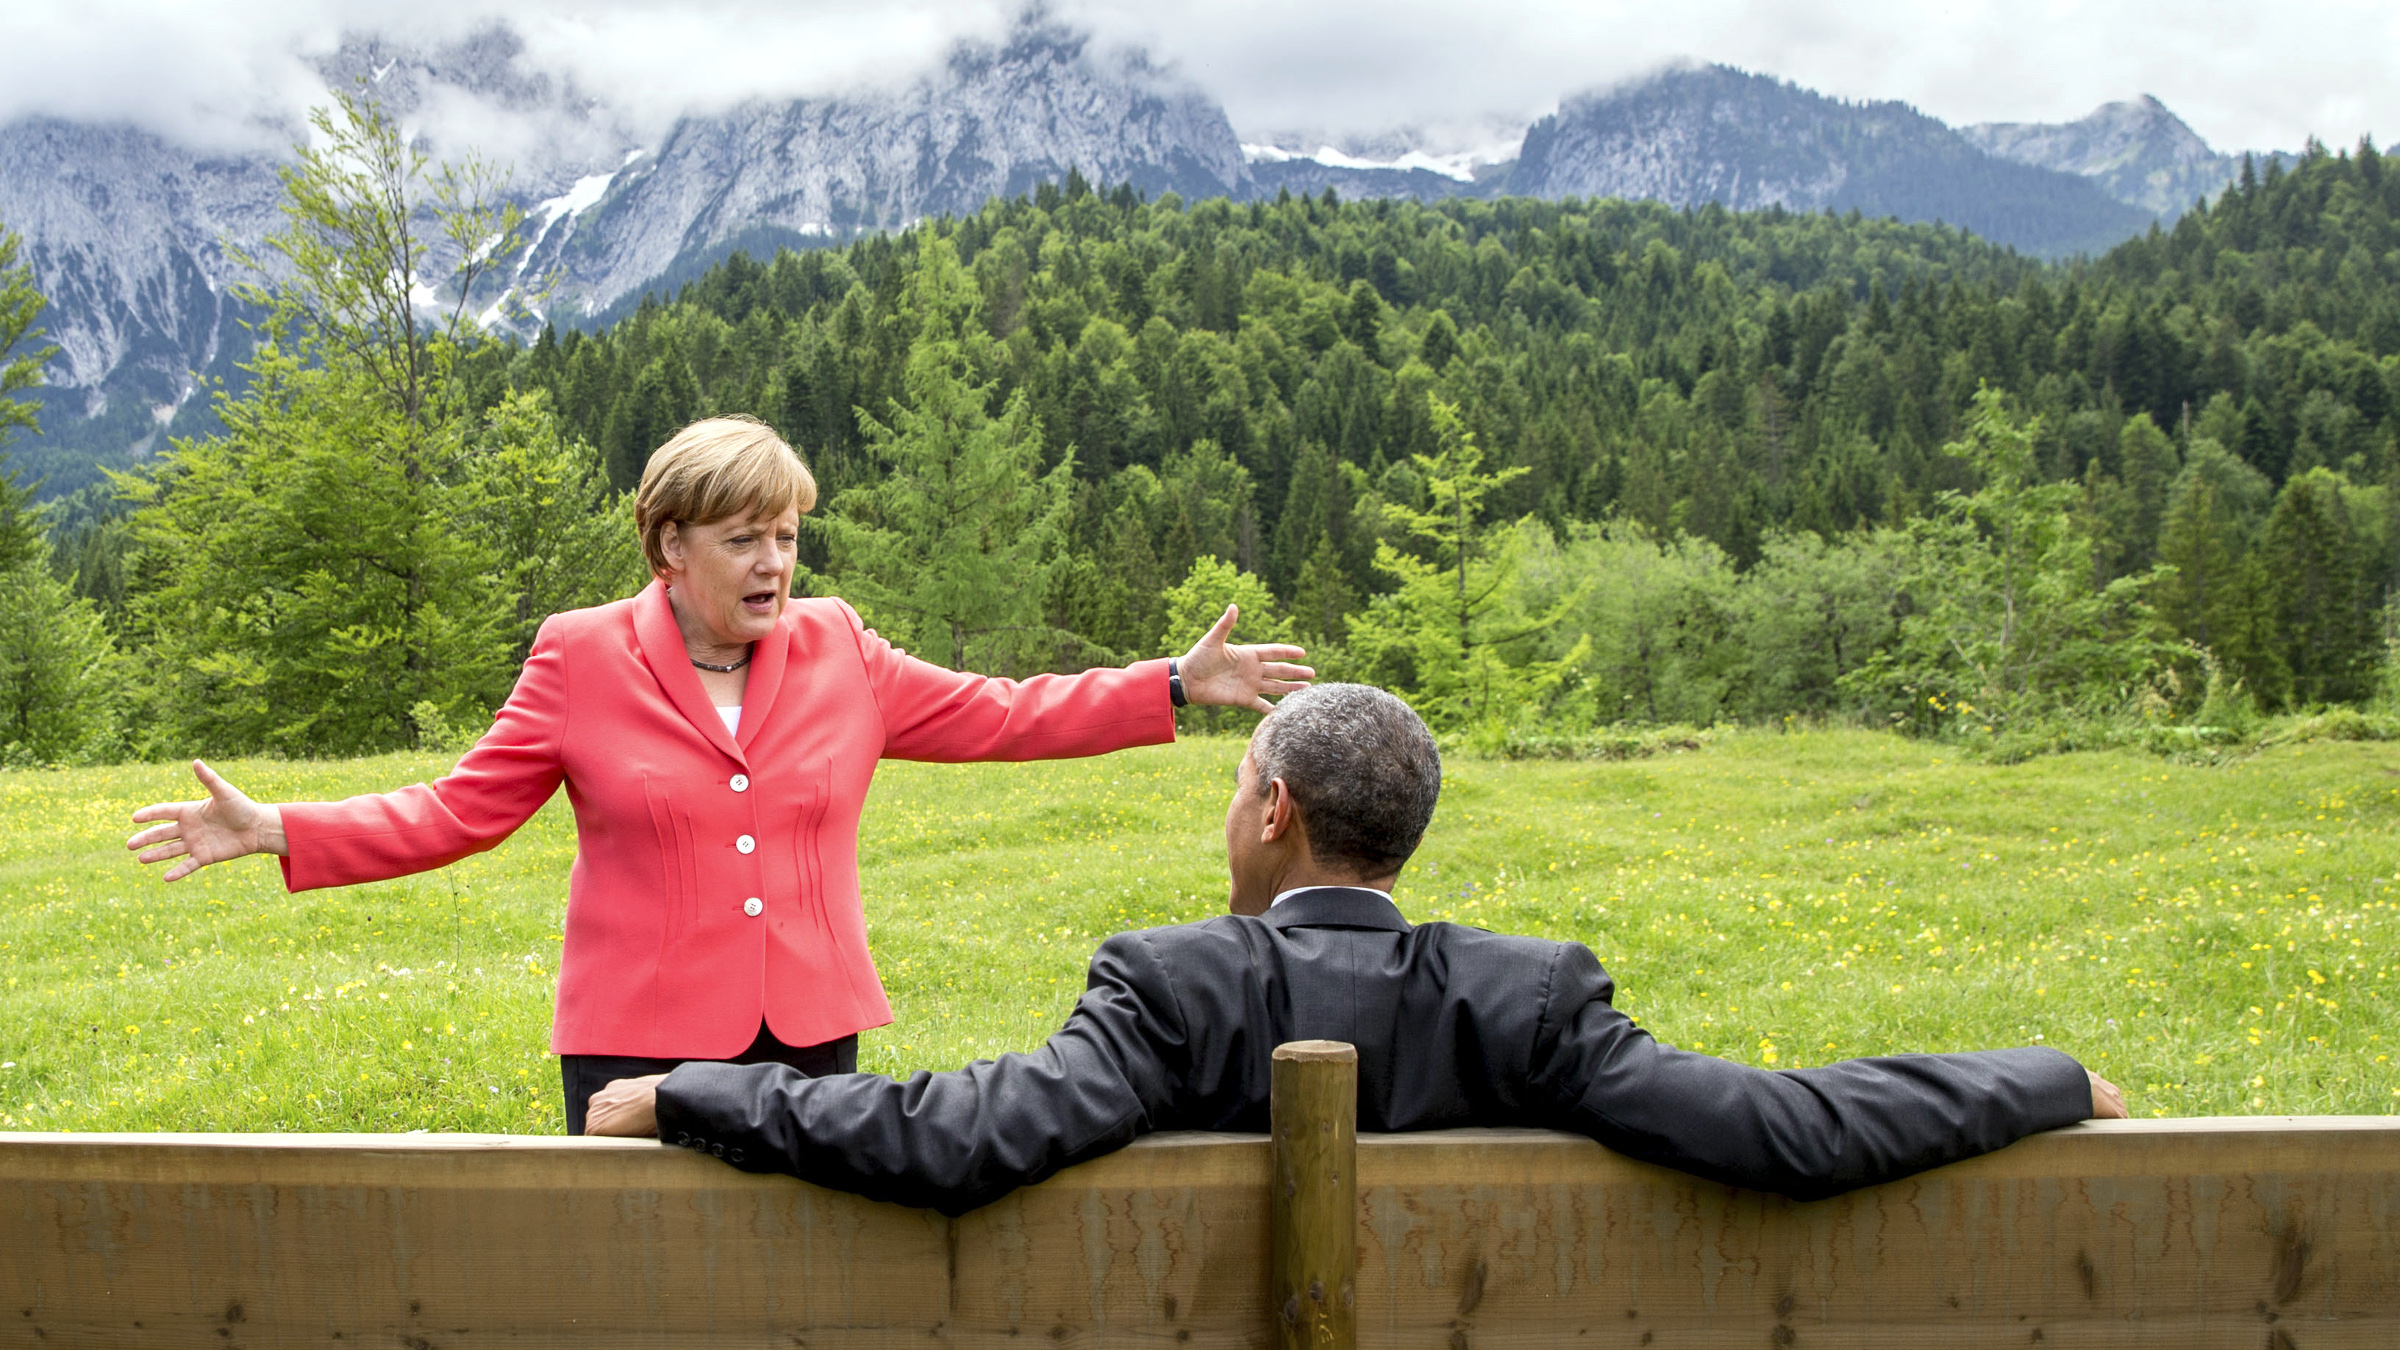 German Chancellor Angela Merkel speaks with U.S. President Barack Obama outside the Elmau castle in Kruen near Garmisch-Partenkirchen, Germany, June 8, 2015. Leaders of the Group of Seven (G7) industrial nations vowed at a summit in the Bavarian Alps on Sunday to keep sanctions against Russia in place until President Vladimir Putin and Moscow-backed separatists fully implement the terms of a peace deal for Ukraine.